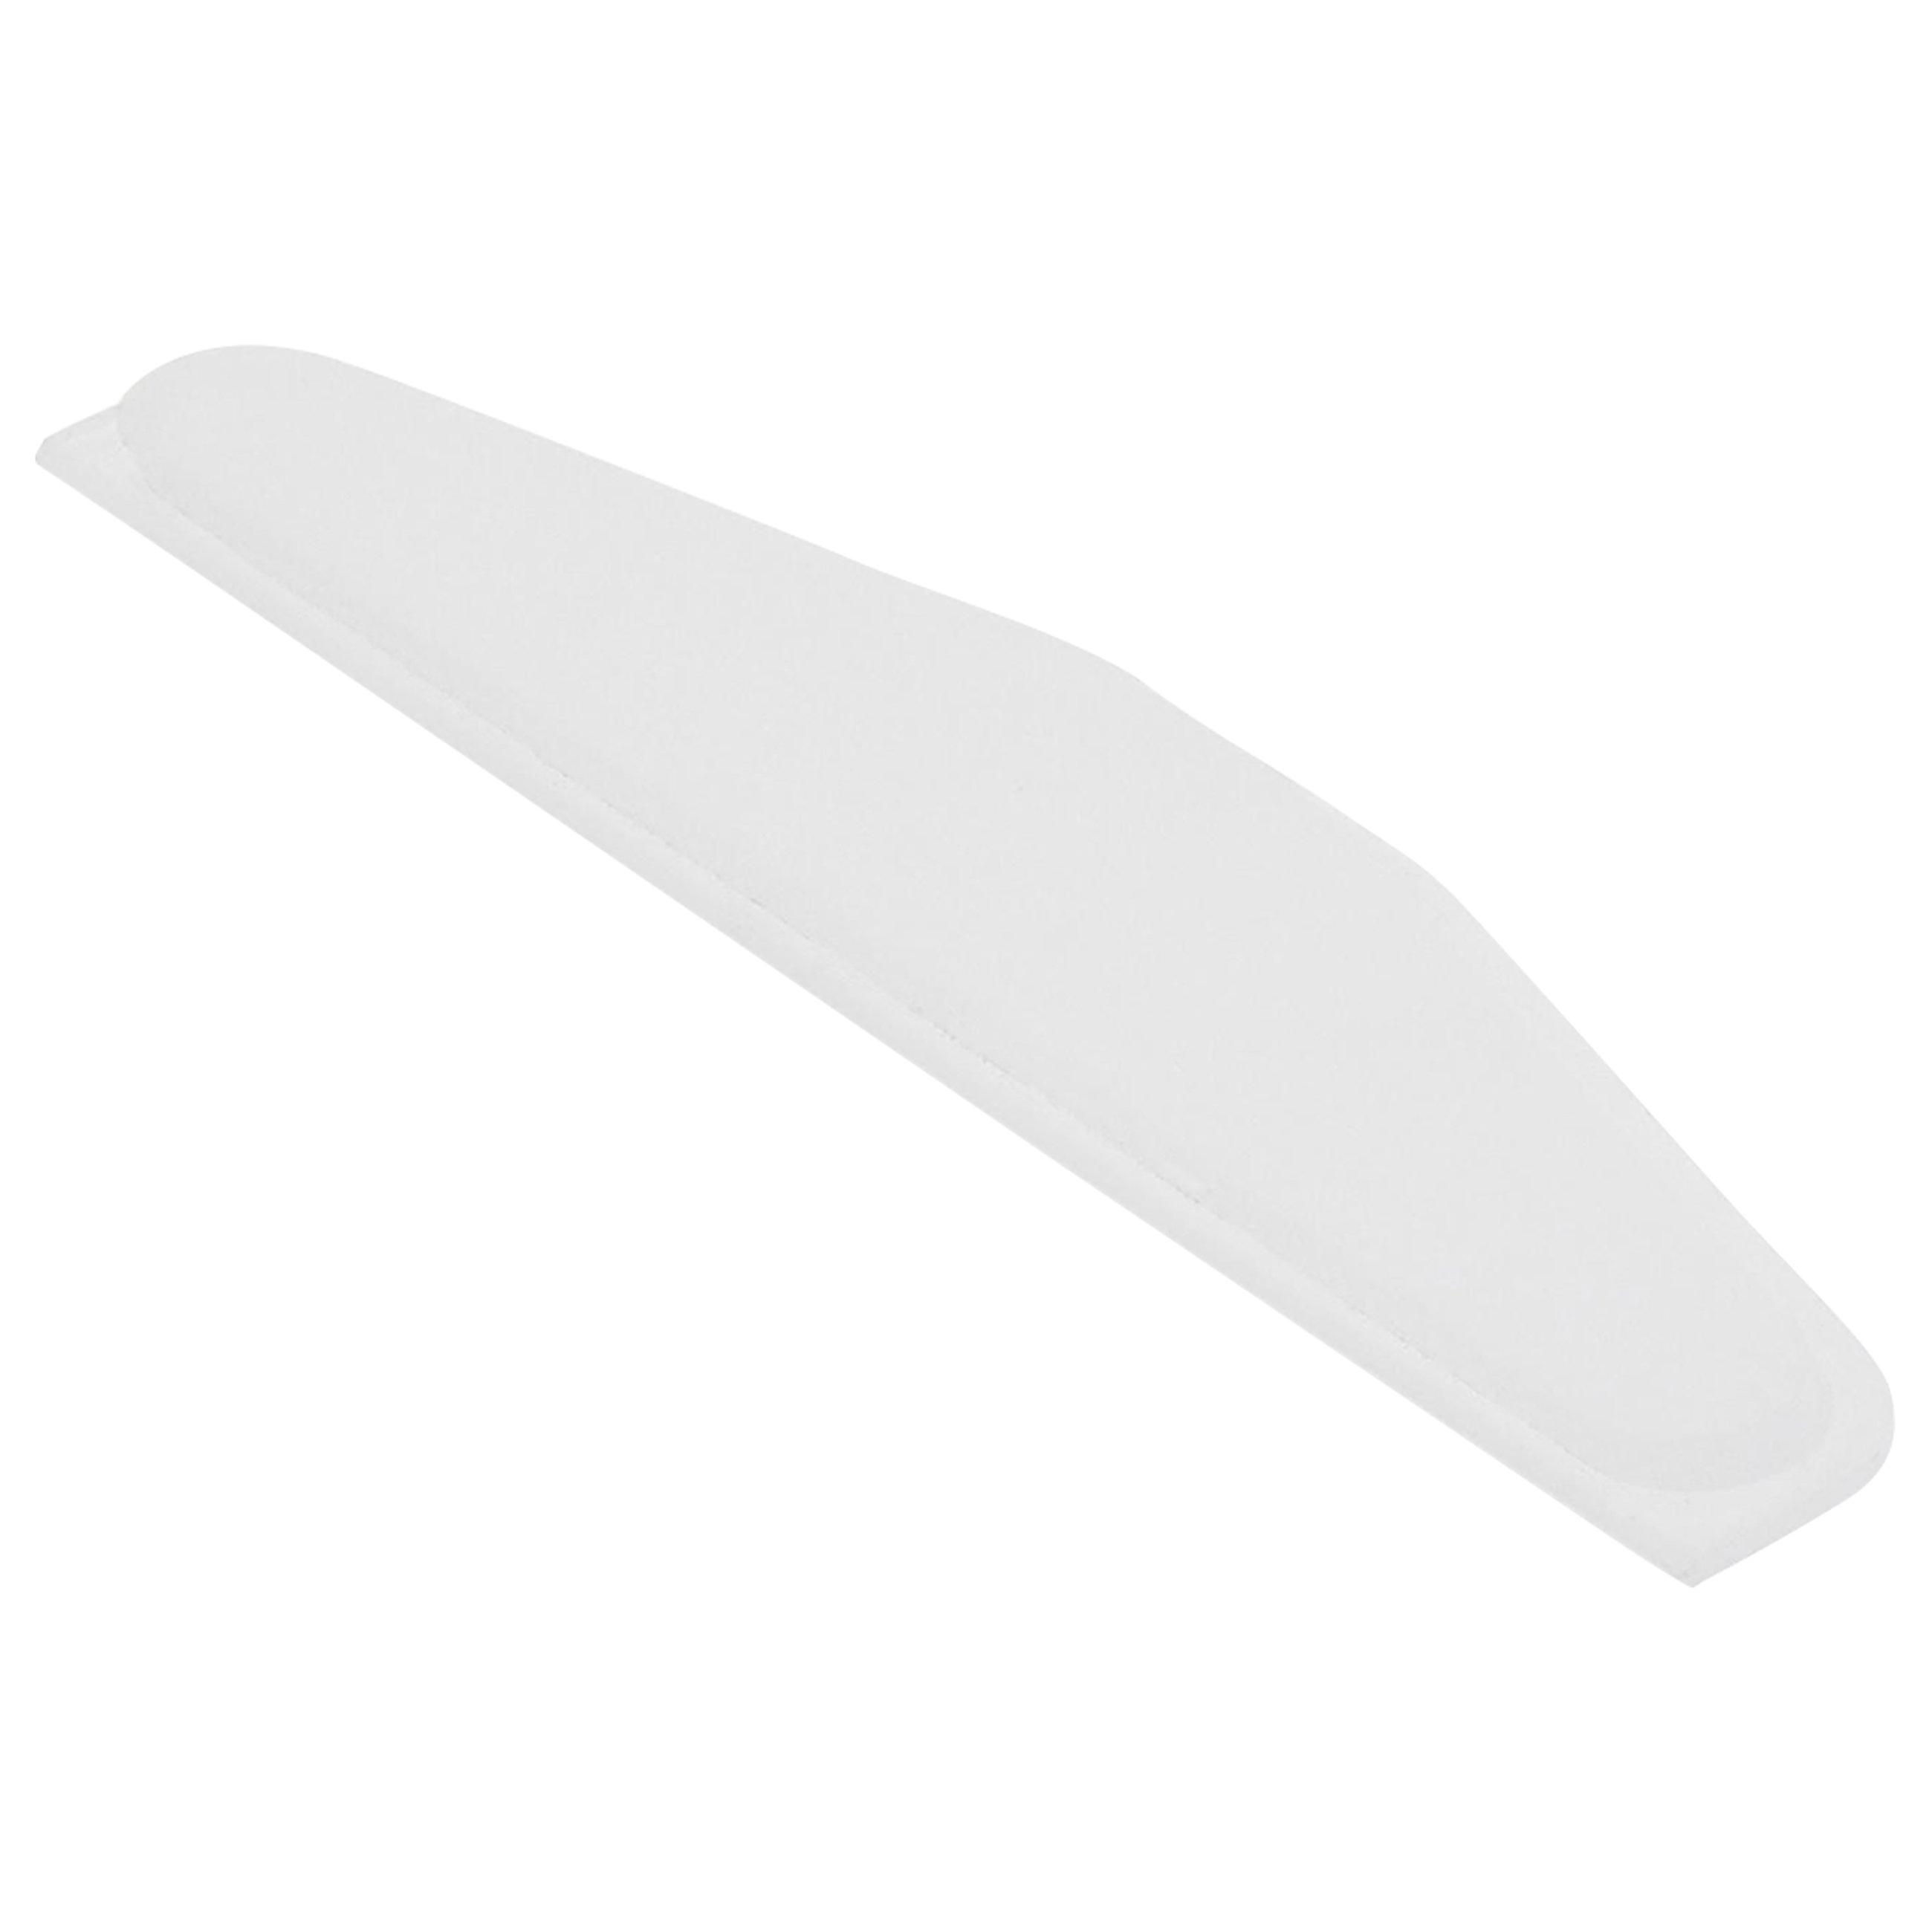 Replacement internal plastic light bar lens cover for sony ps4 controllers